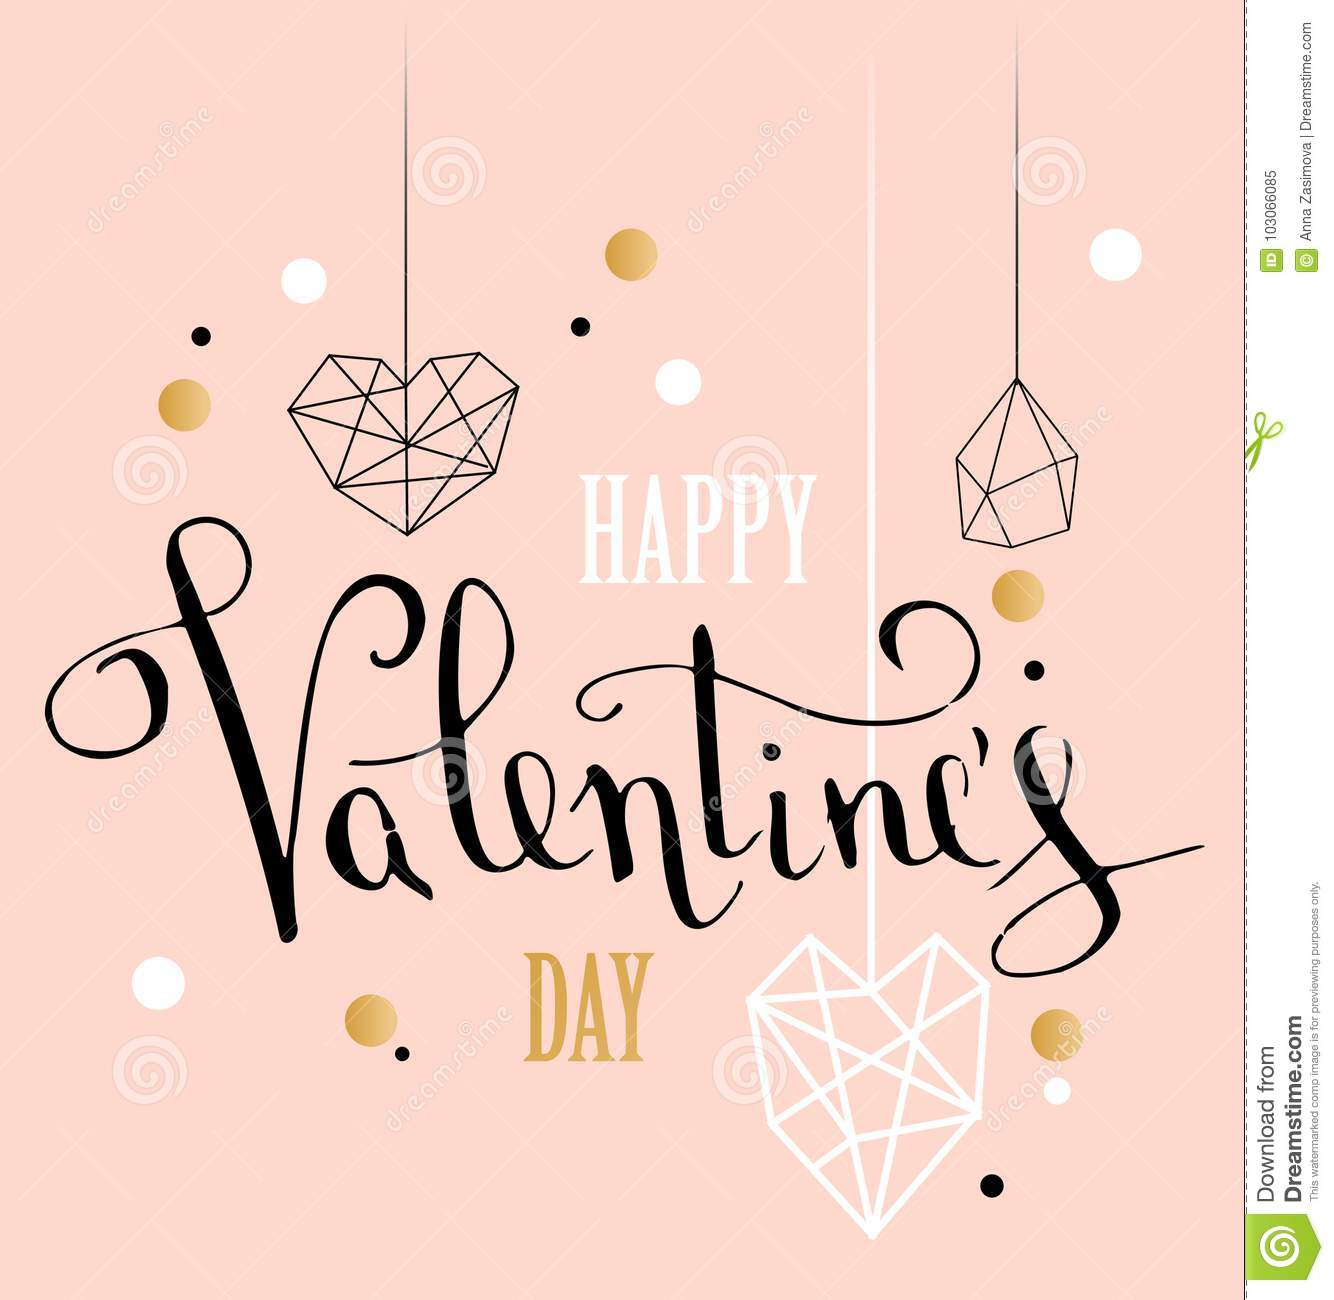 Happy valentines day love greeting card with white low poly style heart shape in golden glitter background